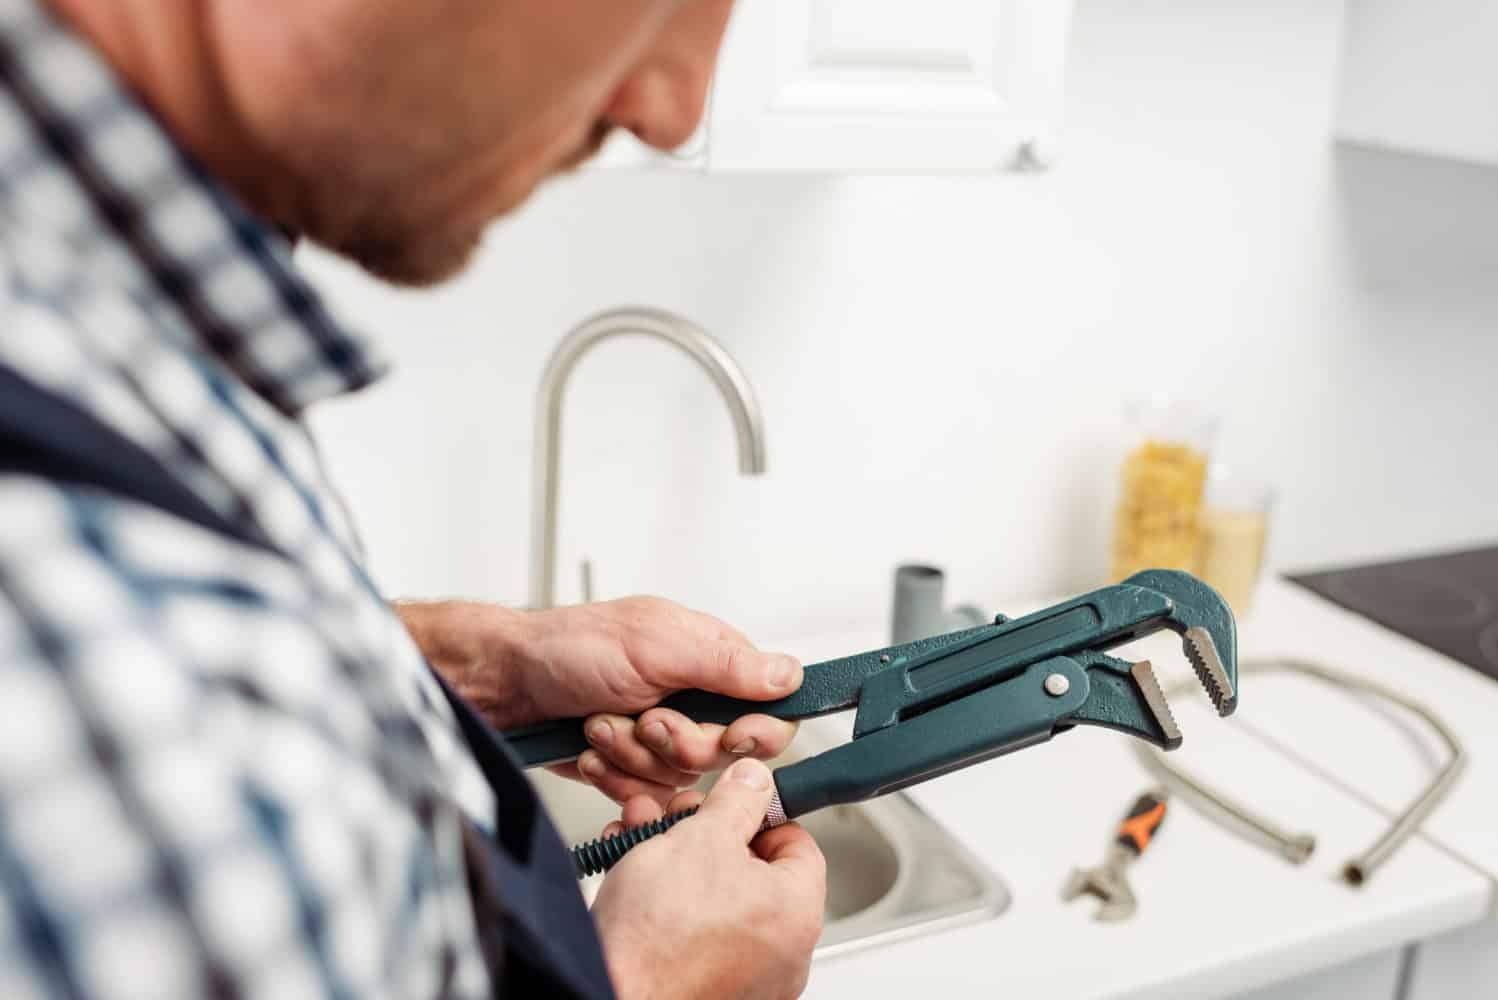 How to Repair Low Pressure in a Kitchen Sink